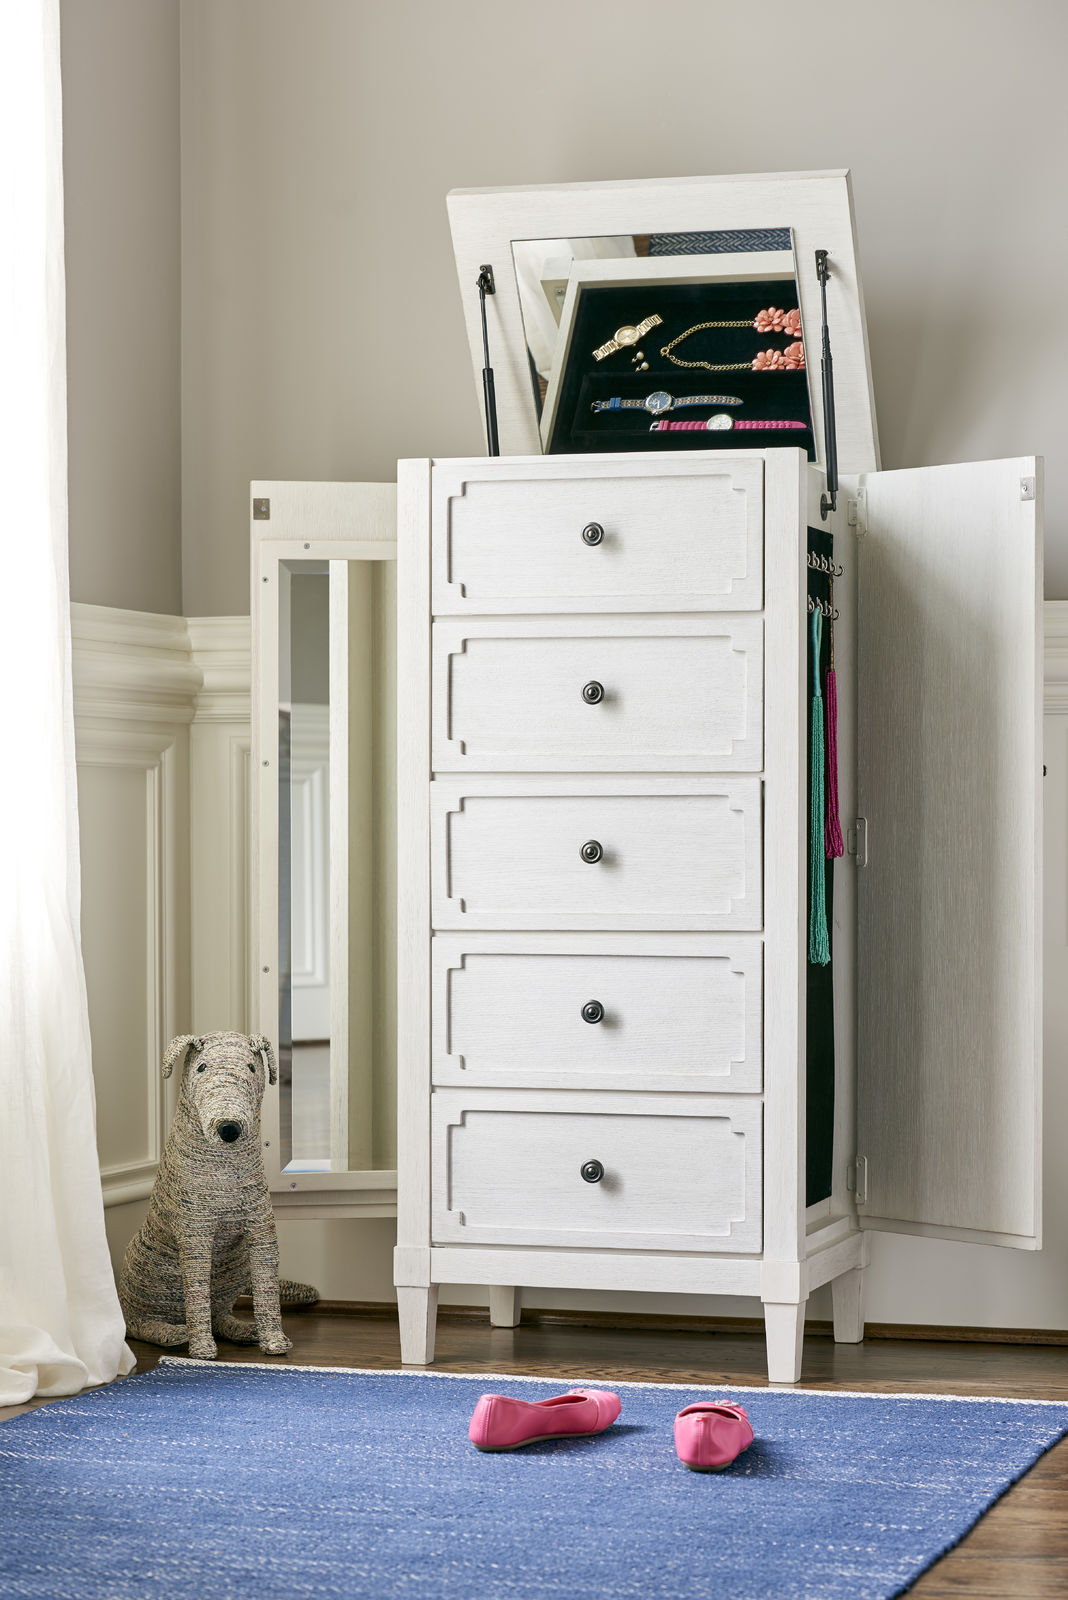 Chest with a mirror and side storage